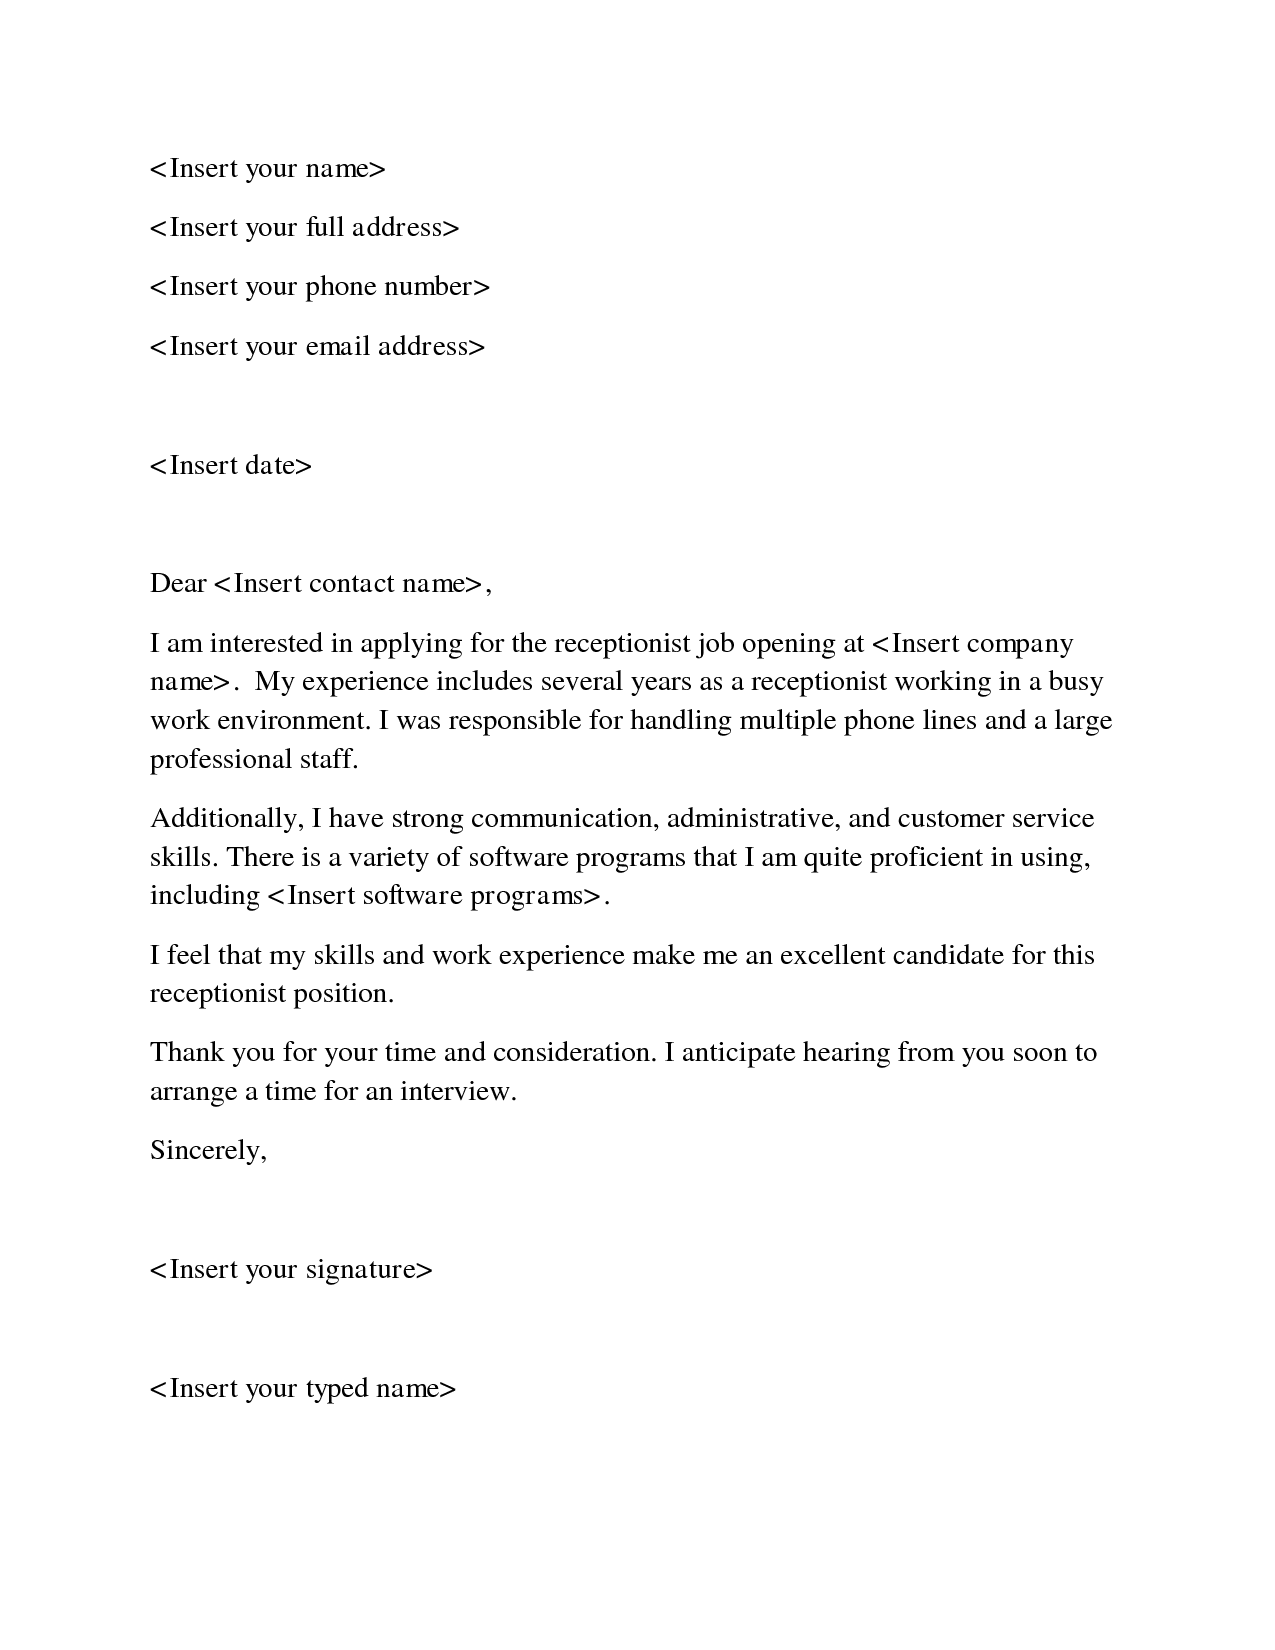 cover letter help receptionist resume top essay writingcover cover letter help receptionist resume top essay writingcover letter samples for jobs application letter sample